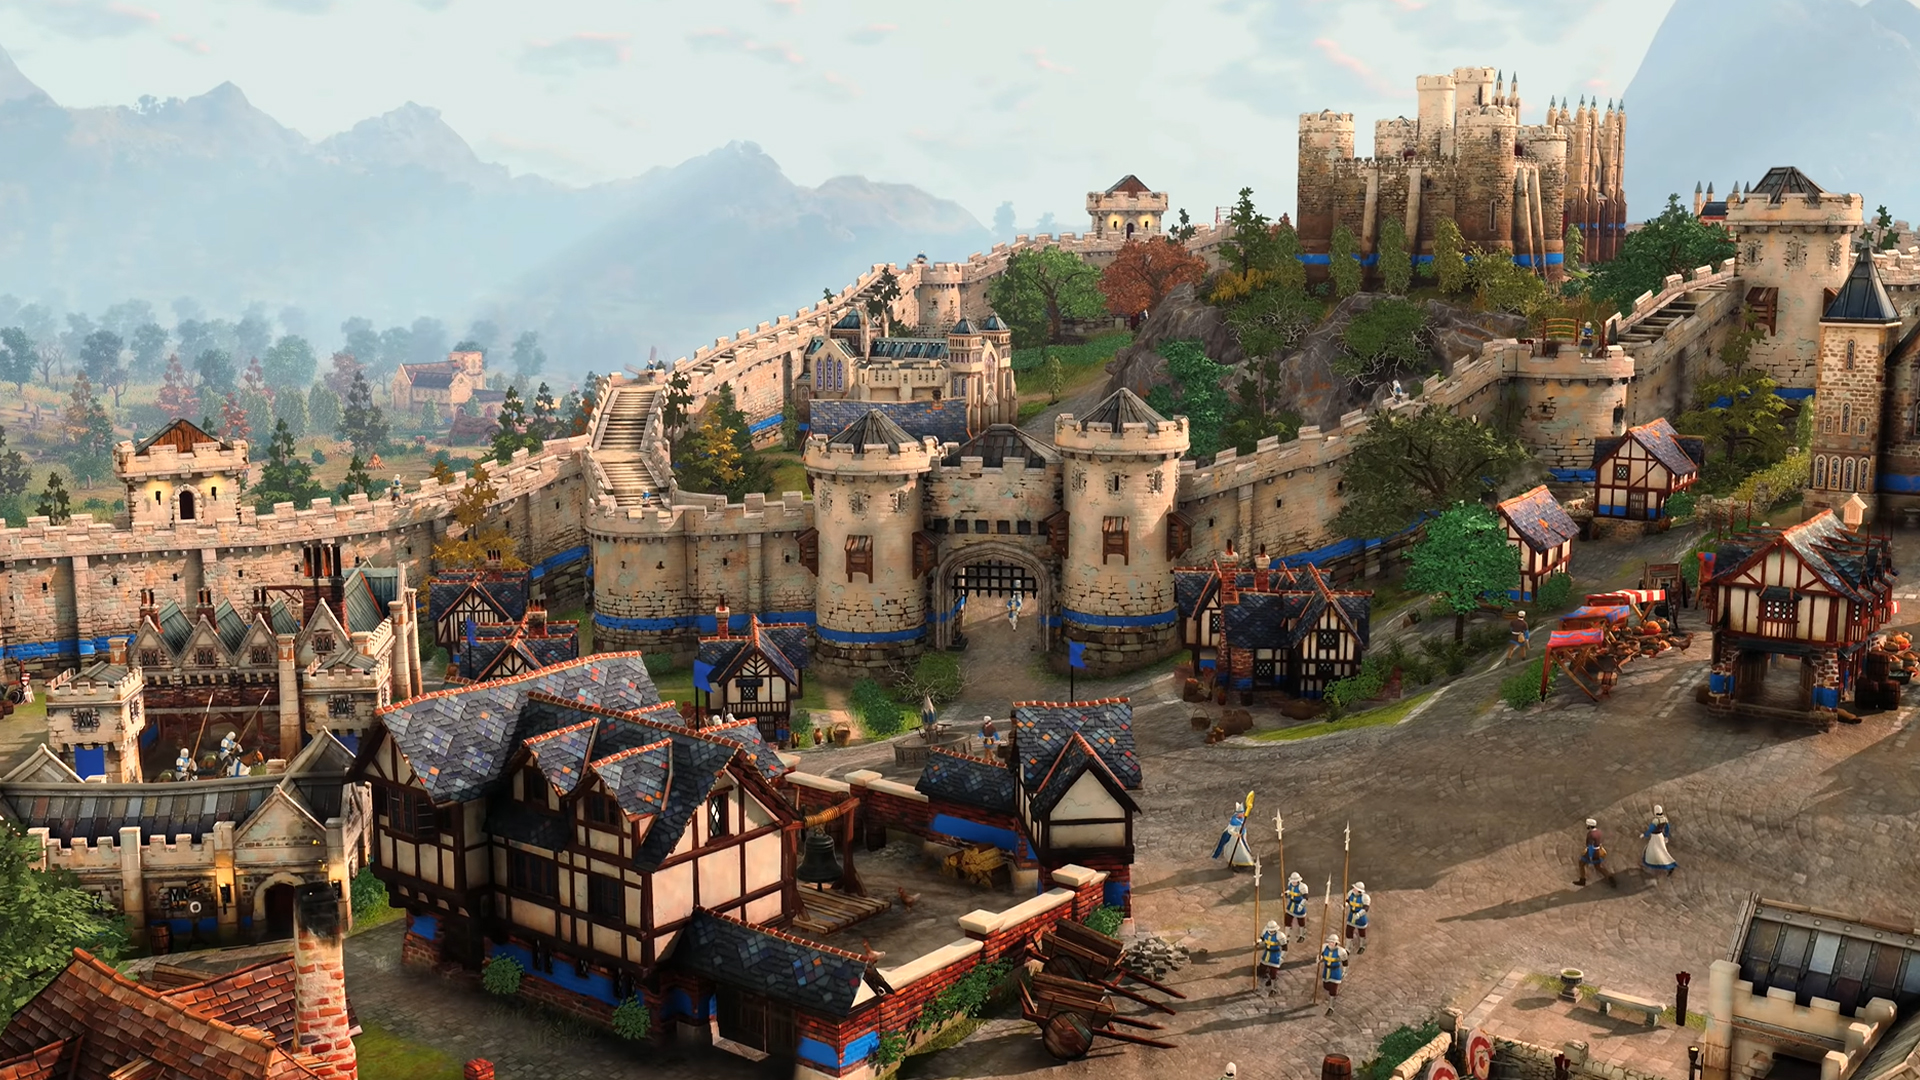 Age of Empires 4 won't have microtransactions or in-app purchases